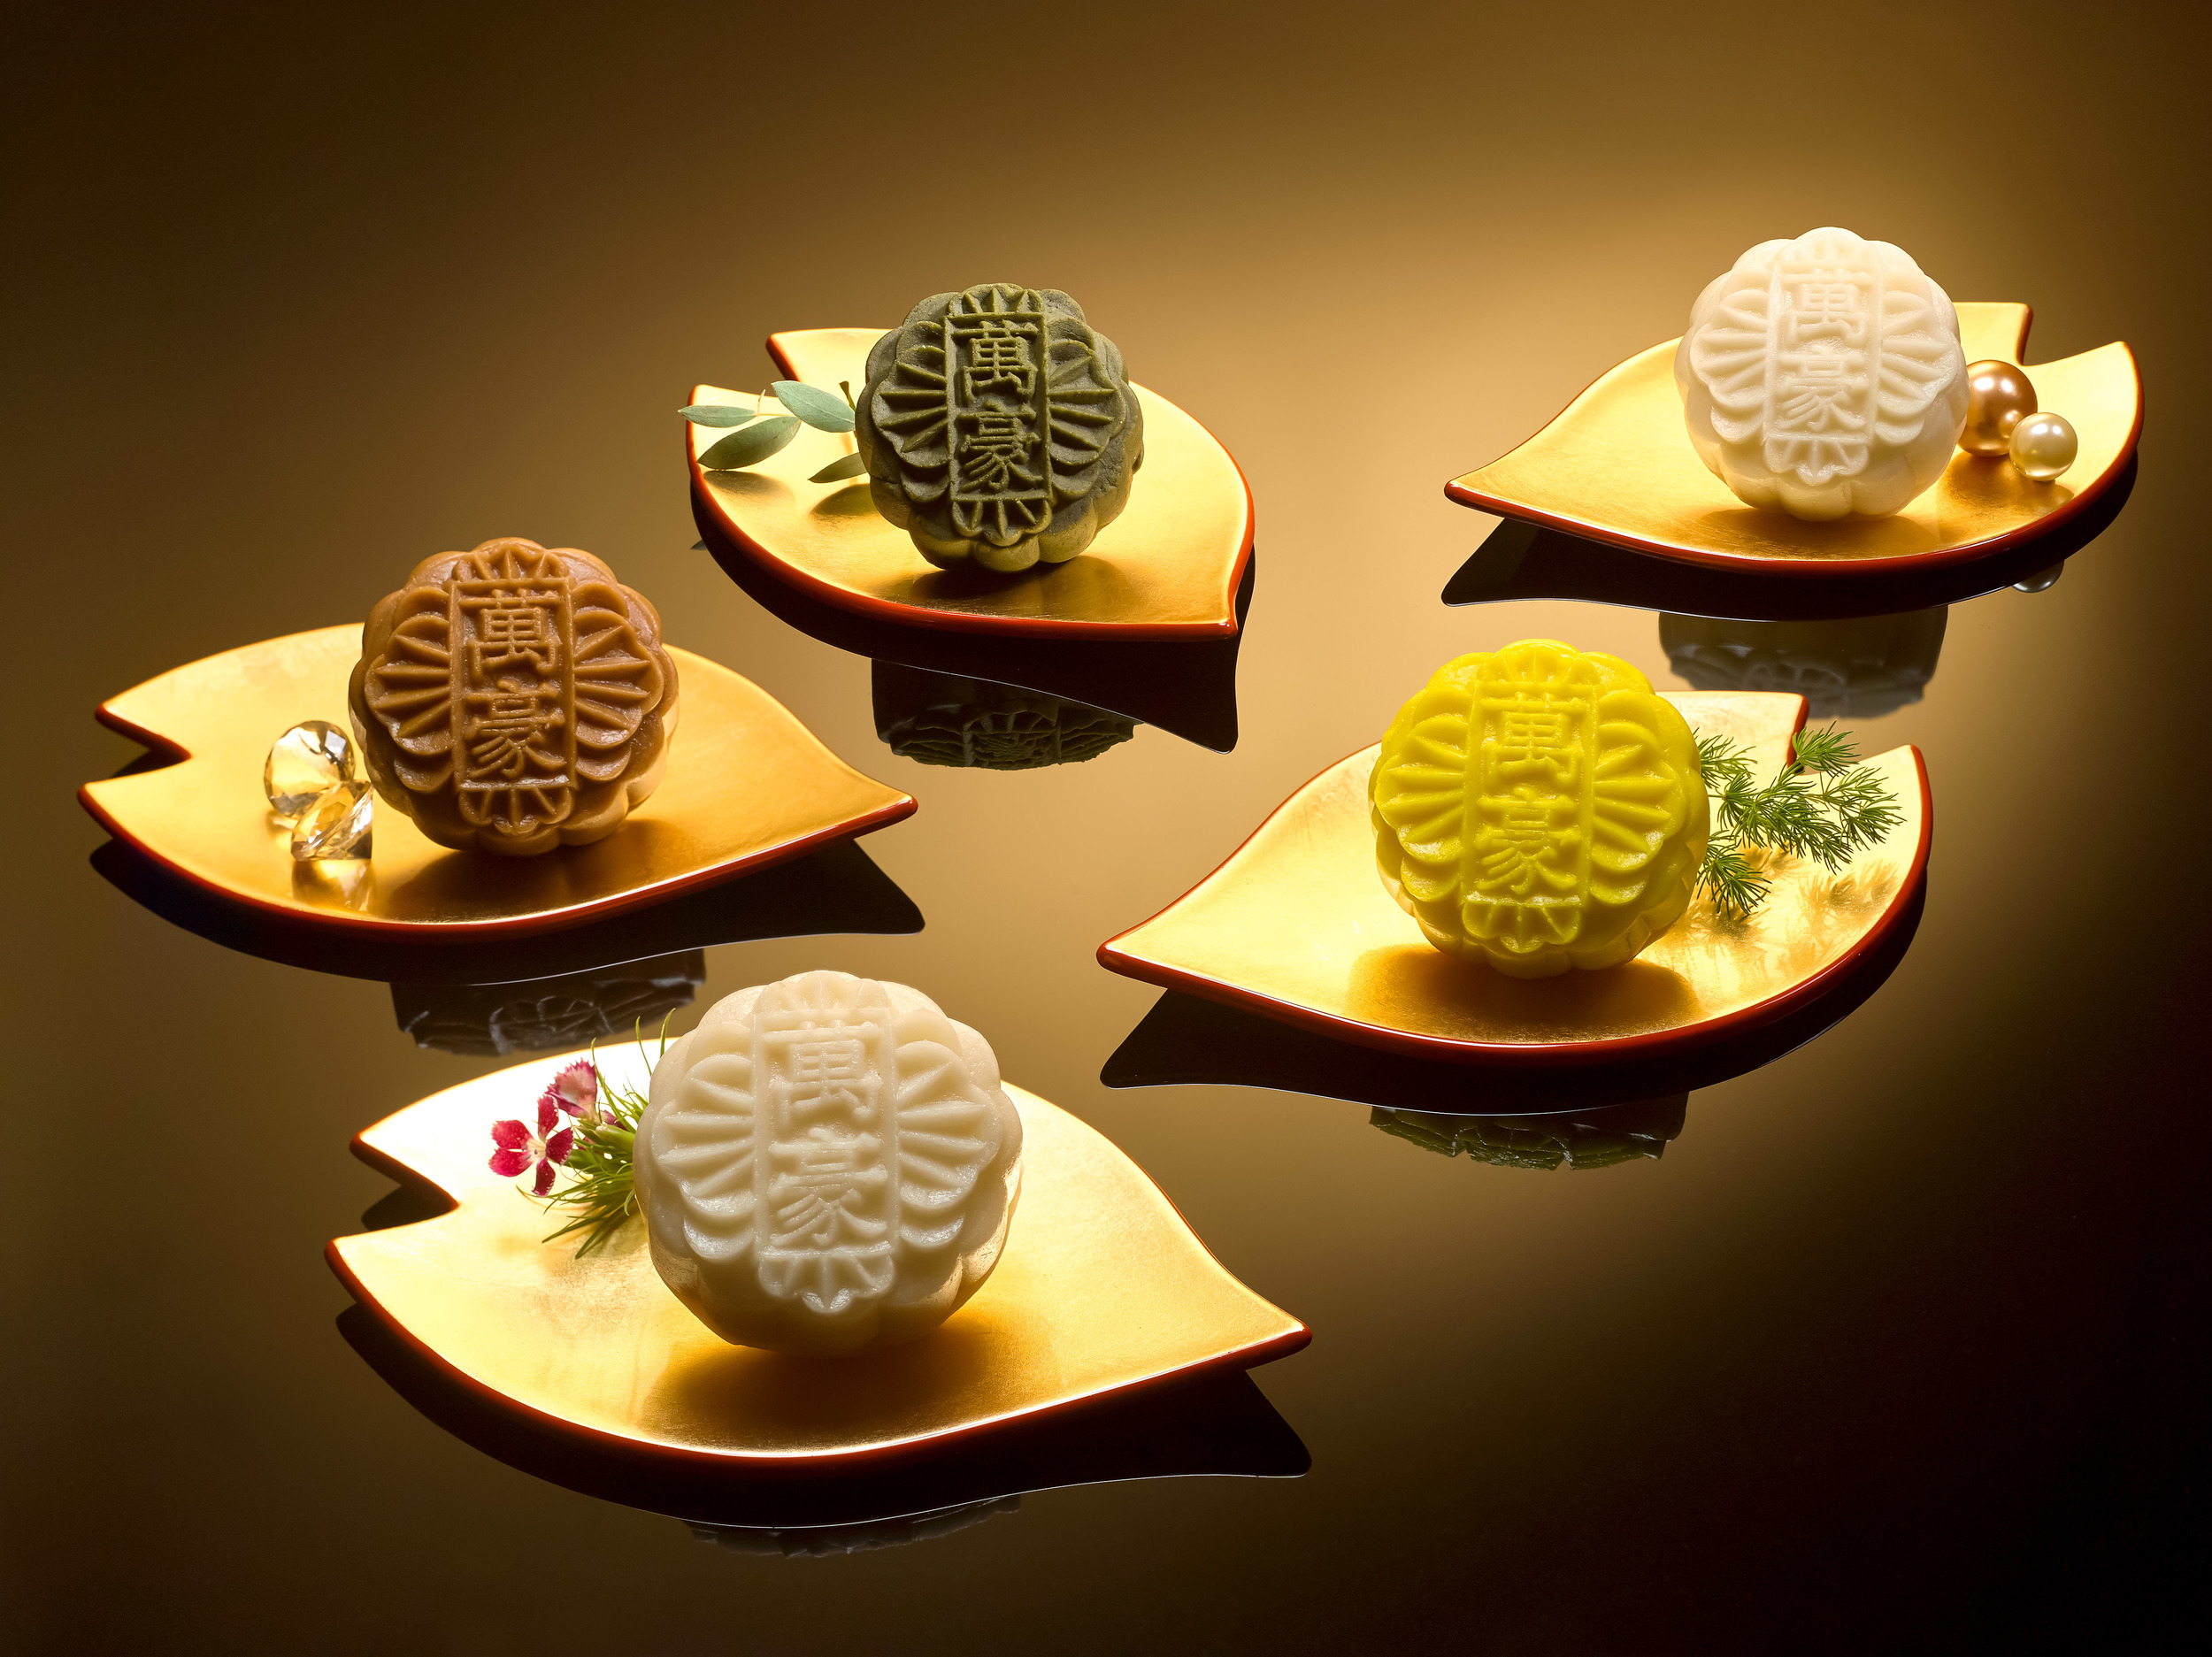 Assorted Snowskin Mooncakes   Photo Credit: Singapore Marriott Tang Plaza Hotel